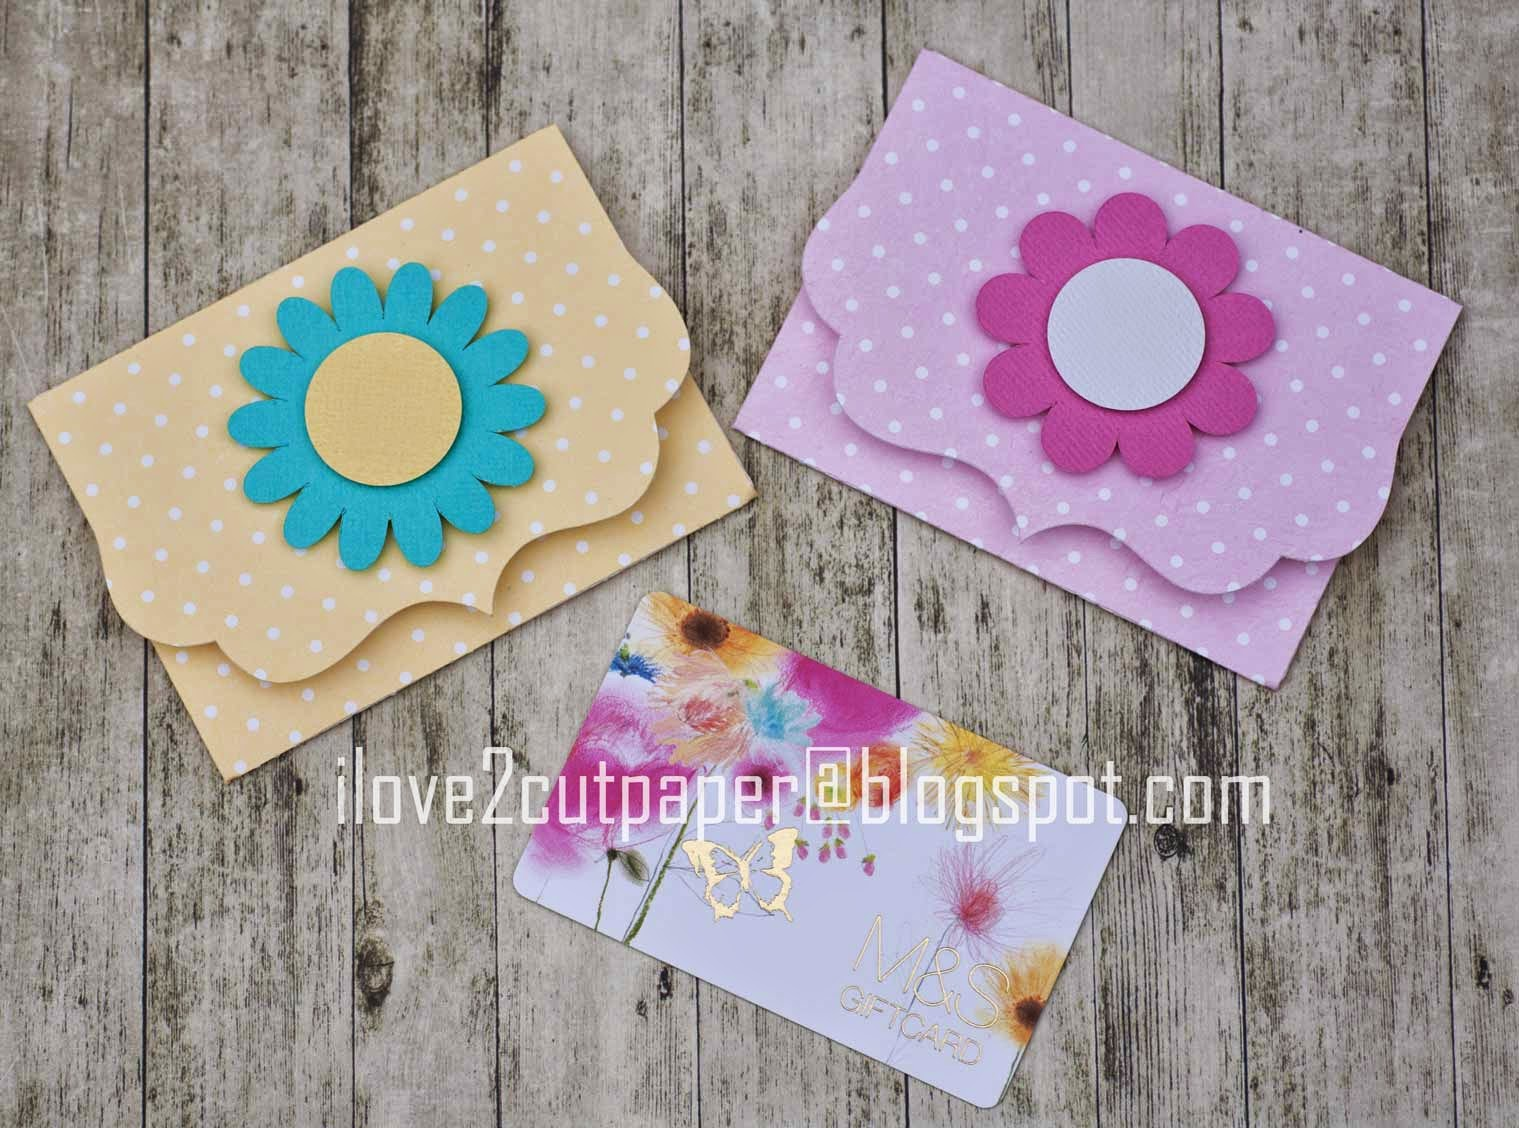 Gift card holders using Pazzles Inspiration cutting machine